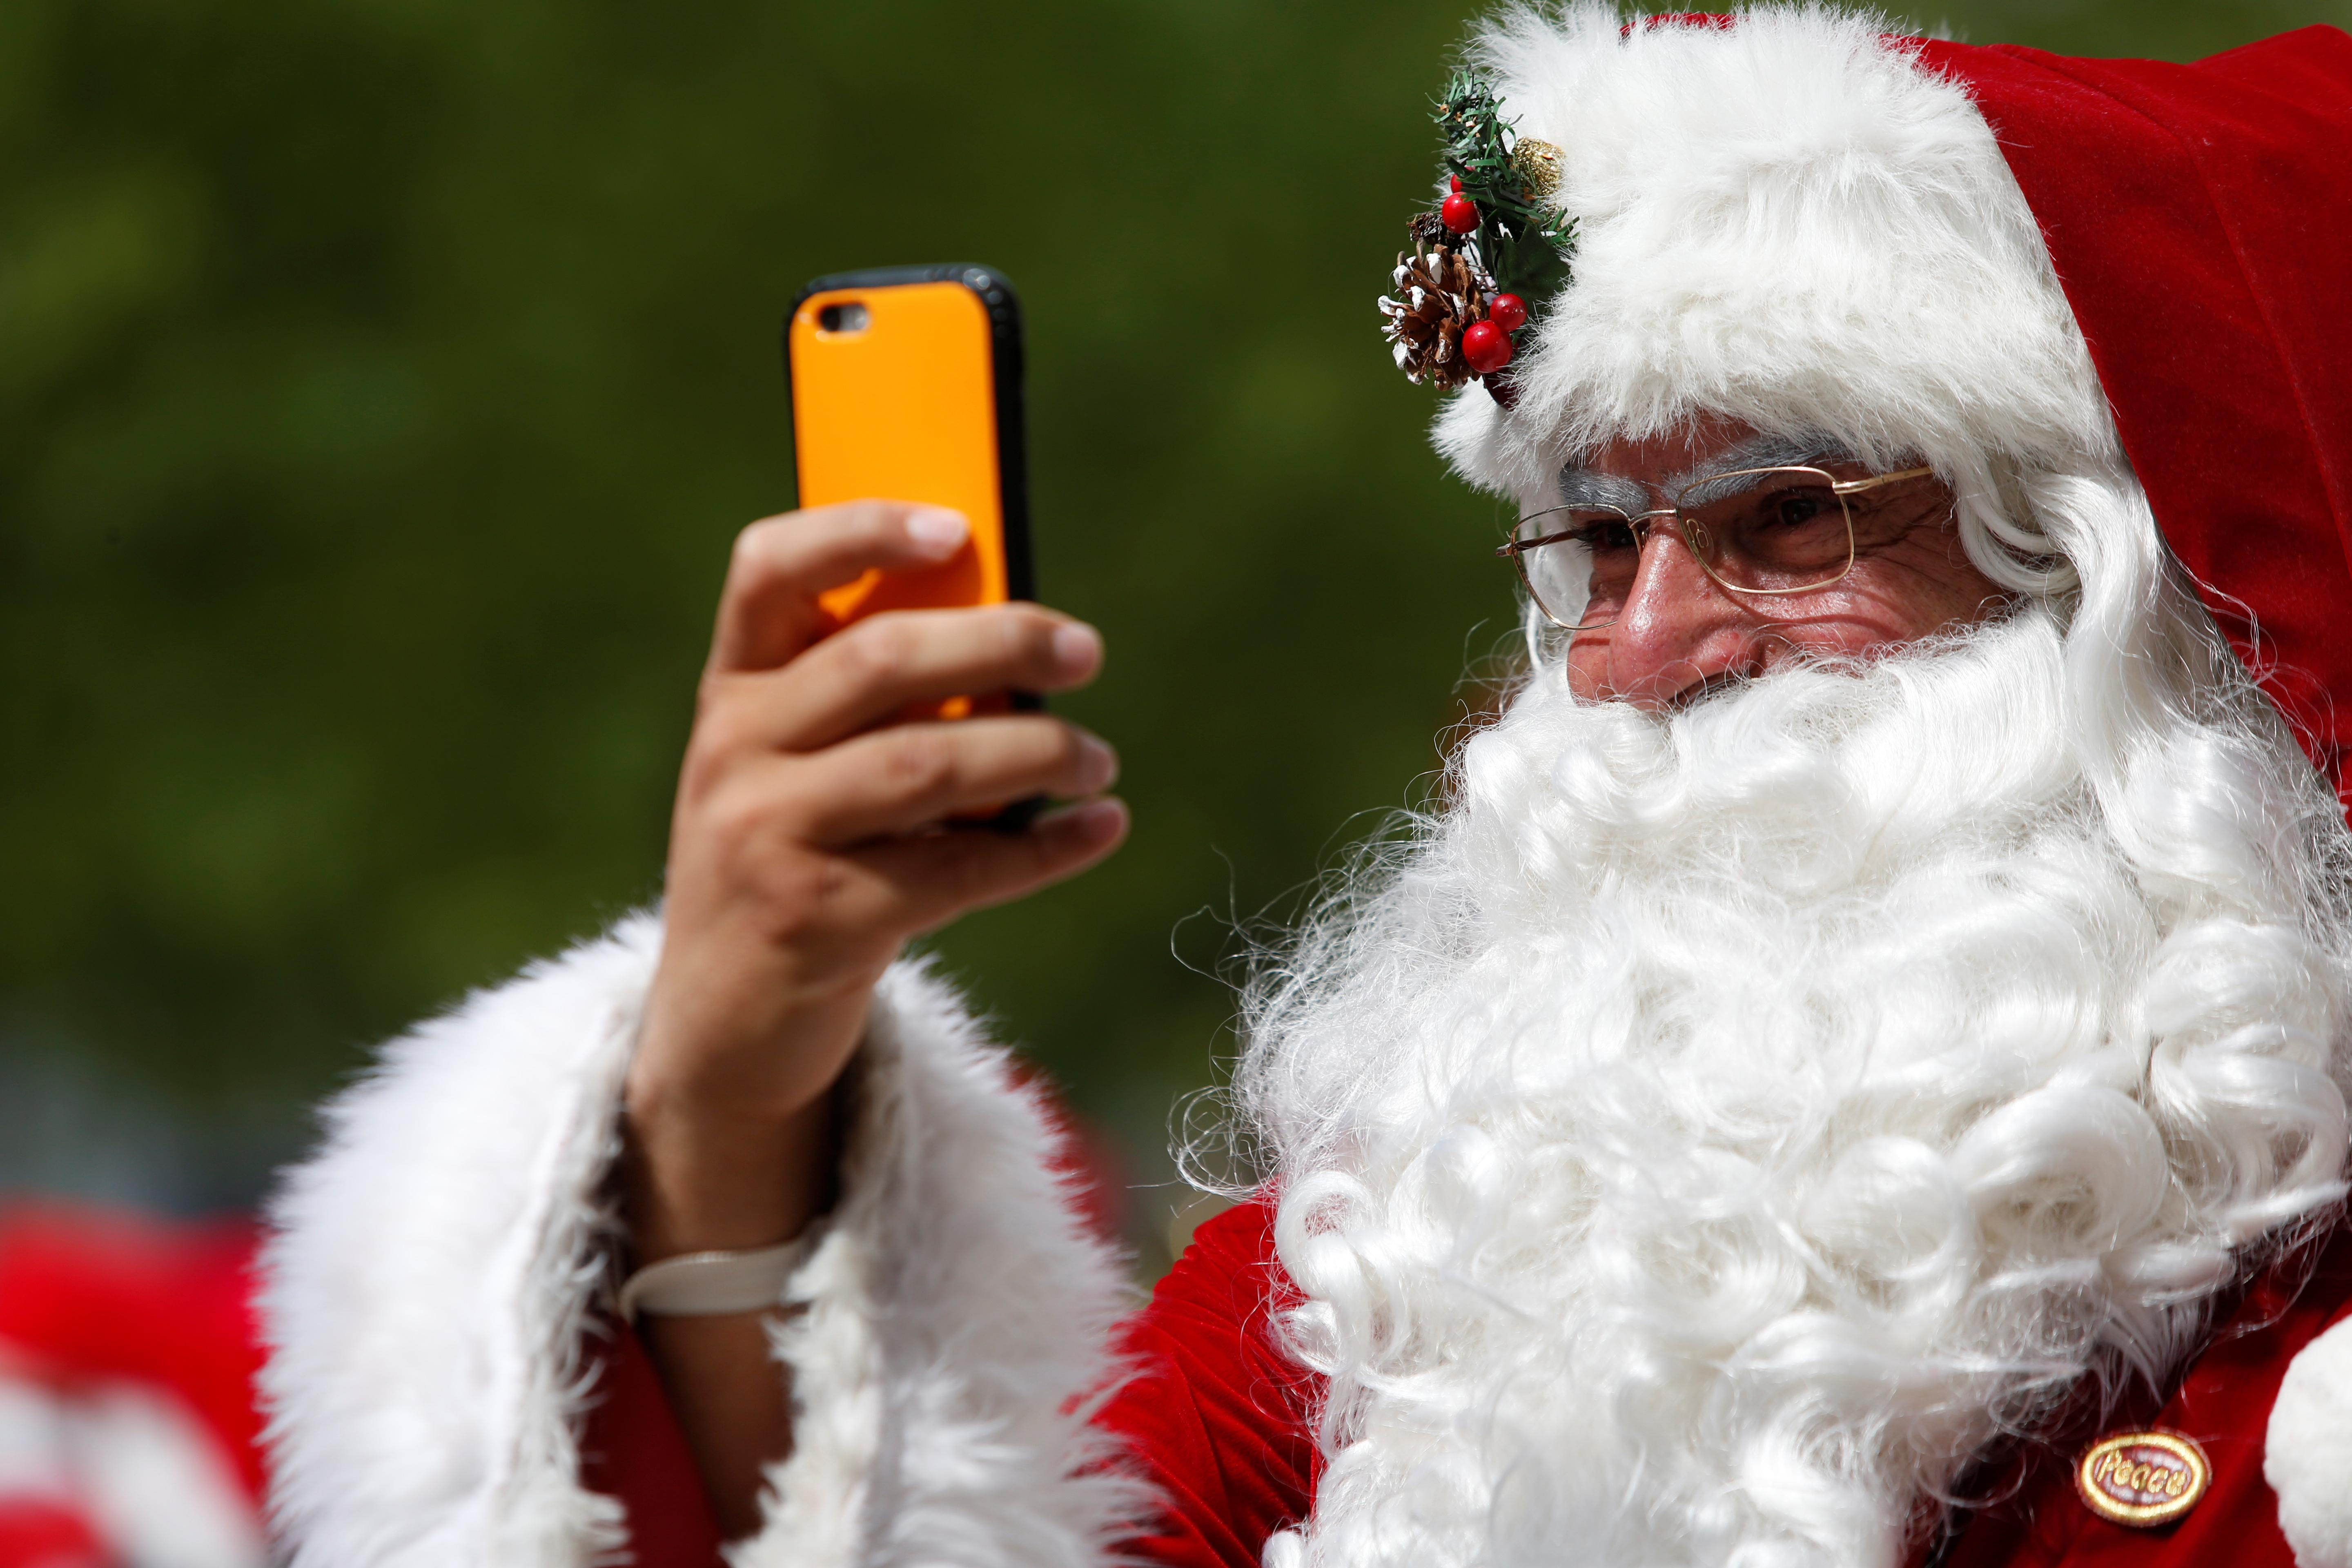 A man dressed as Santa Claus records on his cellphone as he takes part in the World Santa Claus Congress, an annual event held every summer in Copenhagen, Denmark, July 23, 2018.  Andrew Kelly